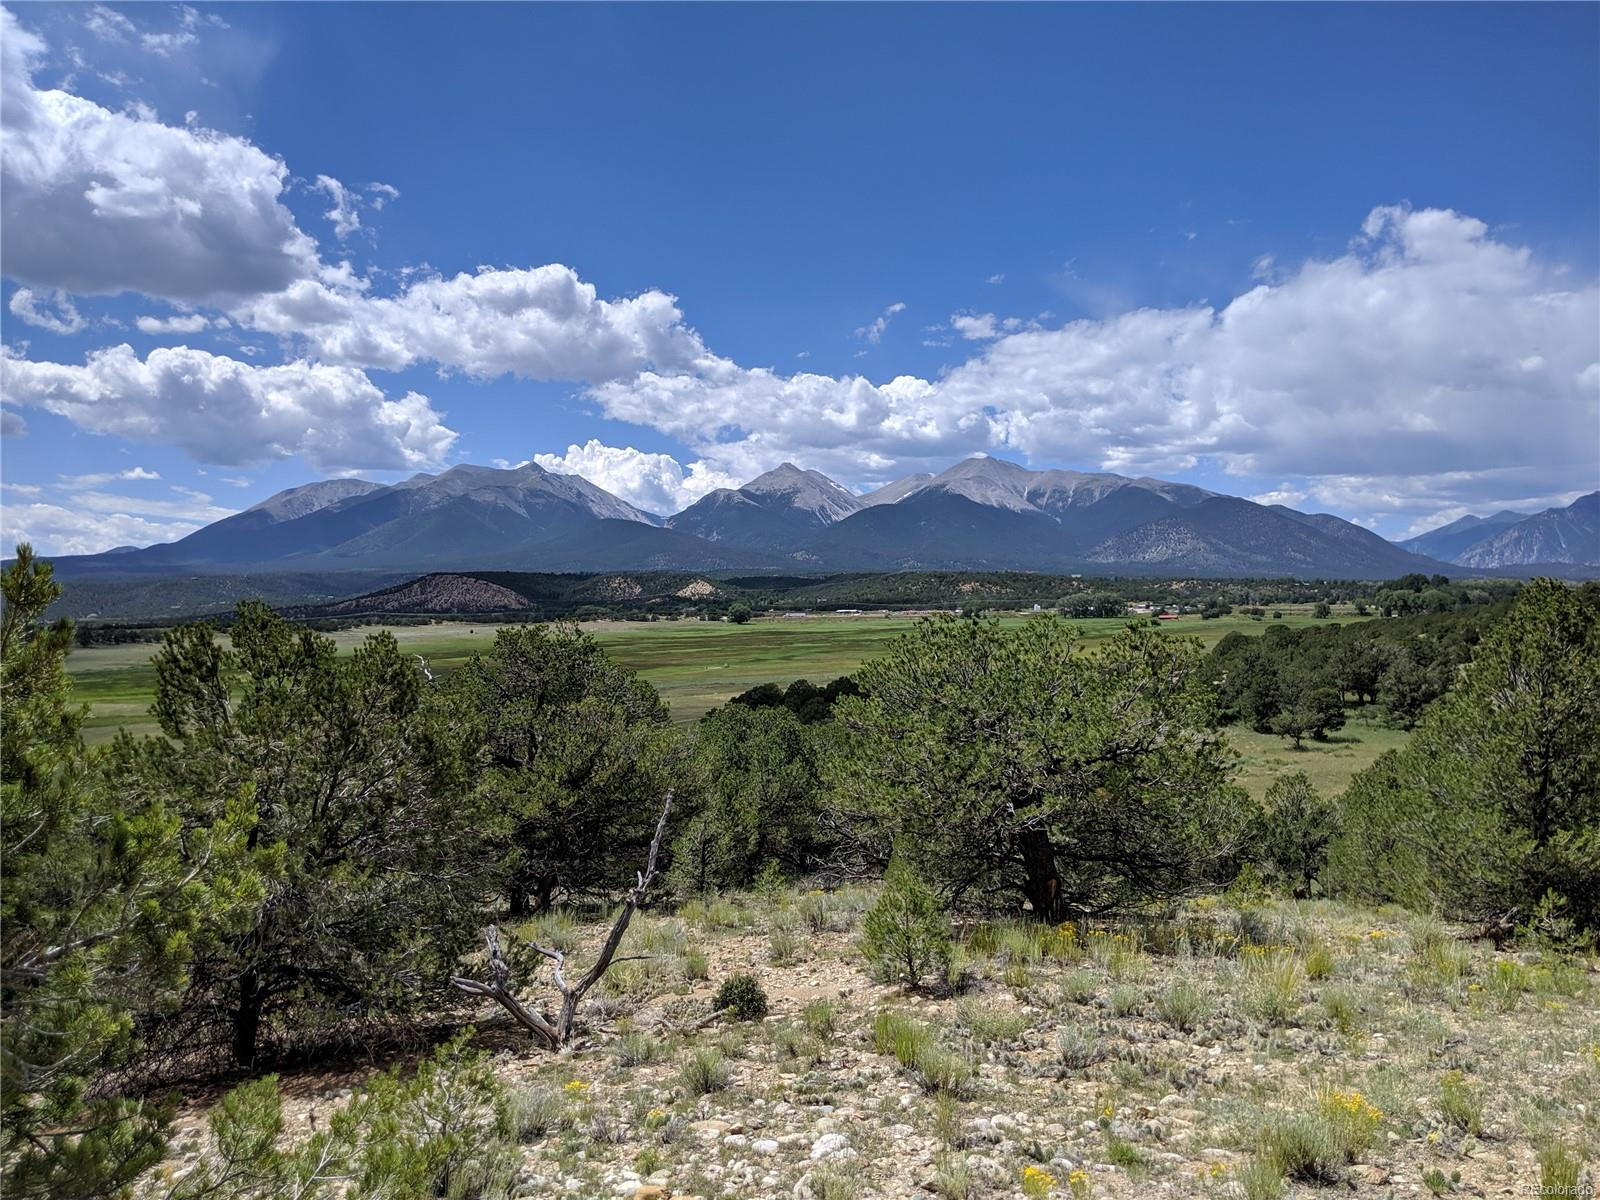 Lot 16, Nathrop, CO 81236 - Nathrop, CO real estate listing